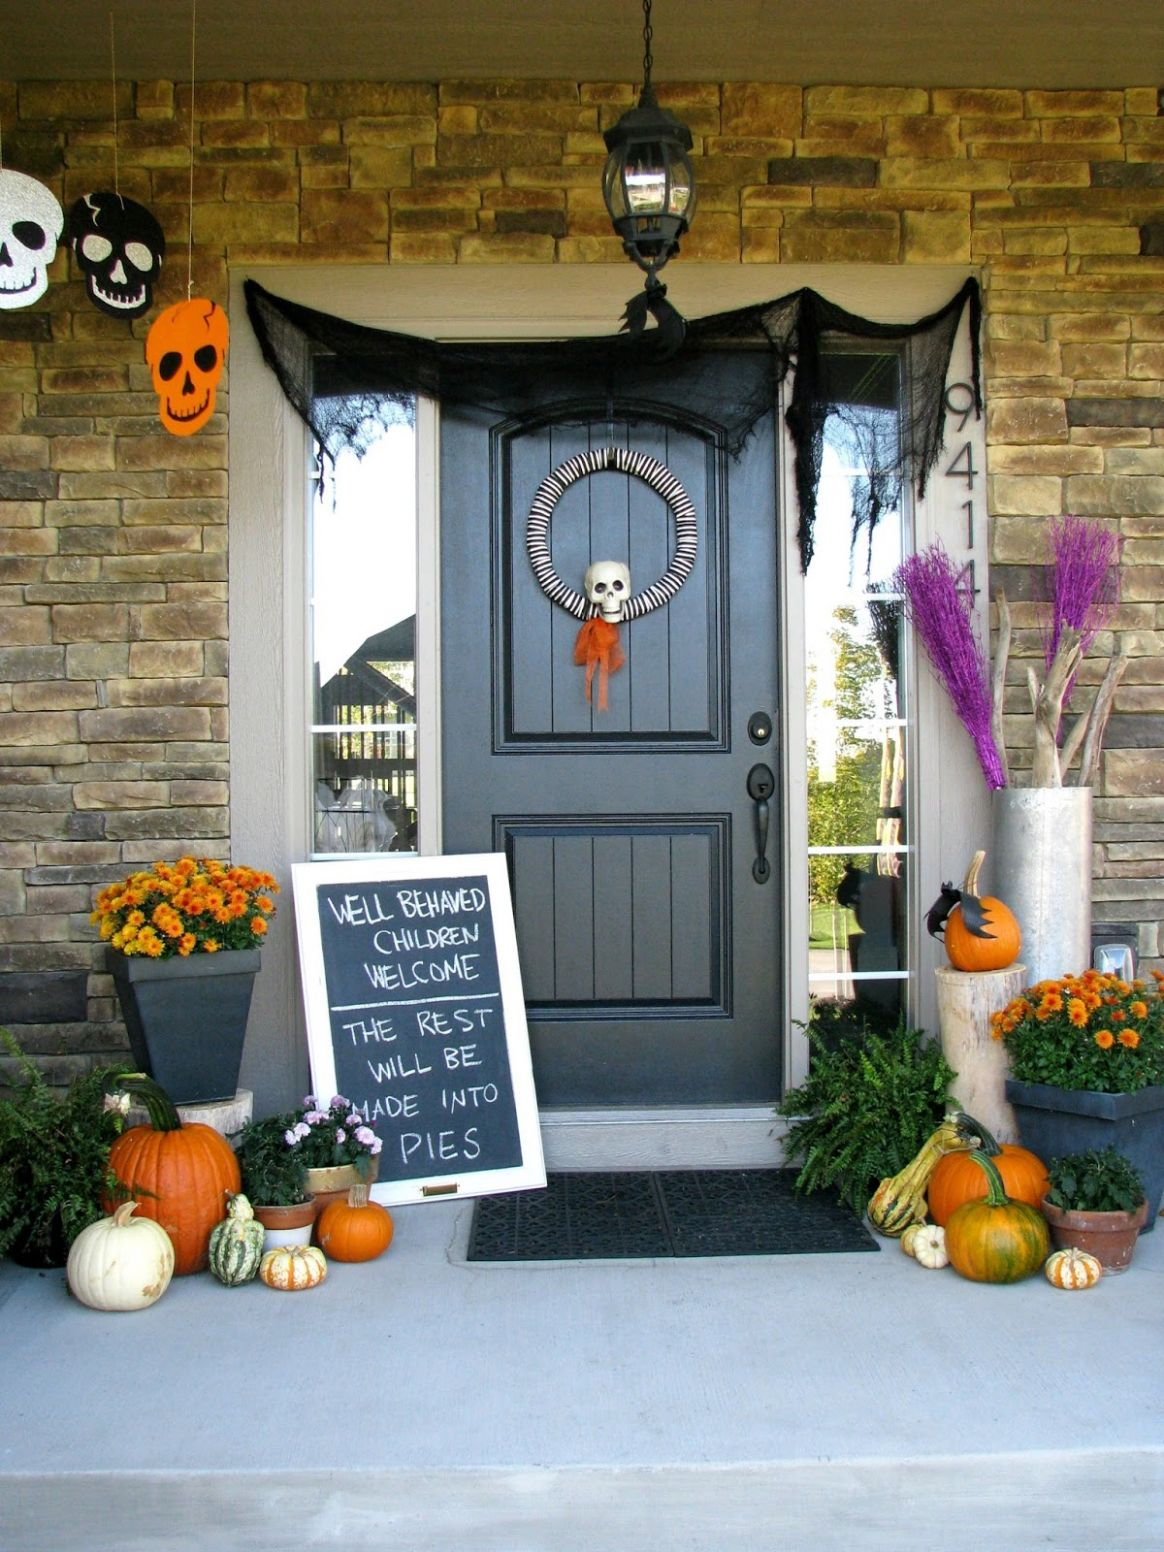 Cute Halloween Front Porch Decorations to Greet Your Guests - front porch decor halloween